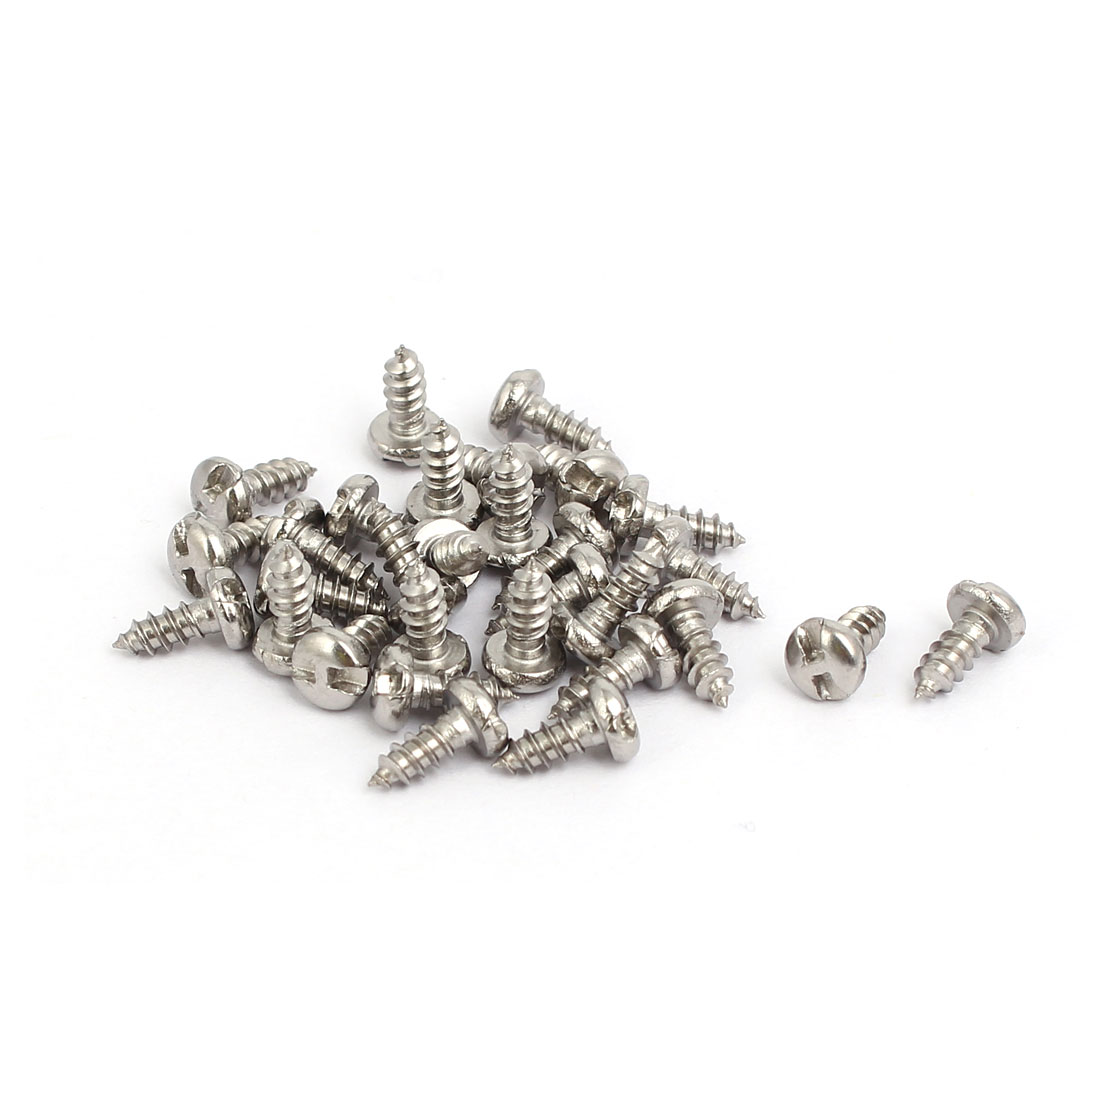 M2.9x6.5mm 304 Stainless Steel H-Type Pan Head Self Tapping Security Screw 30pcs